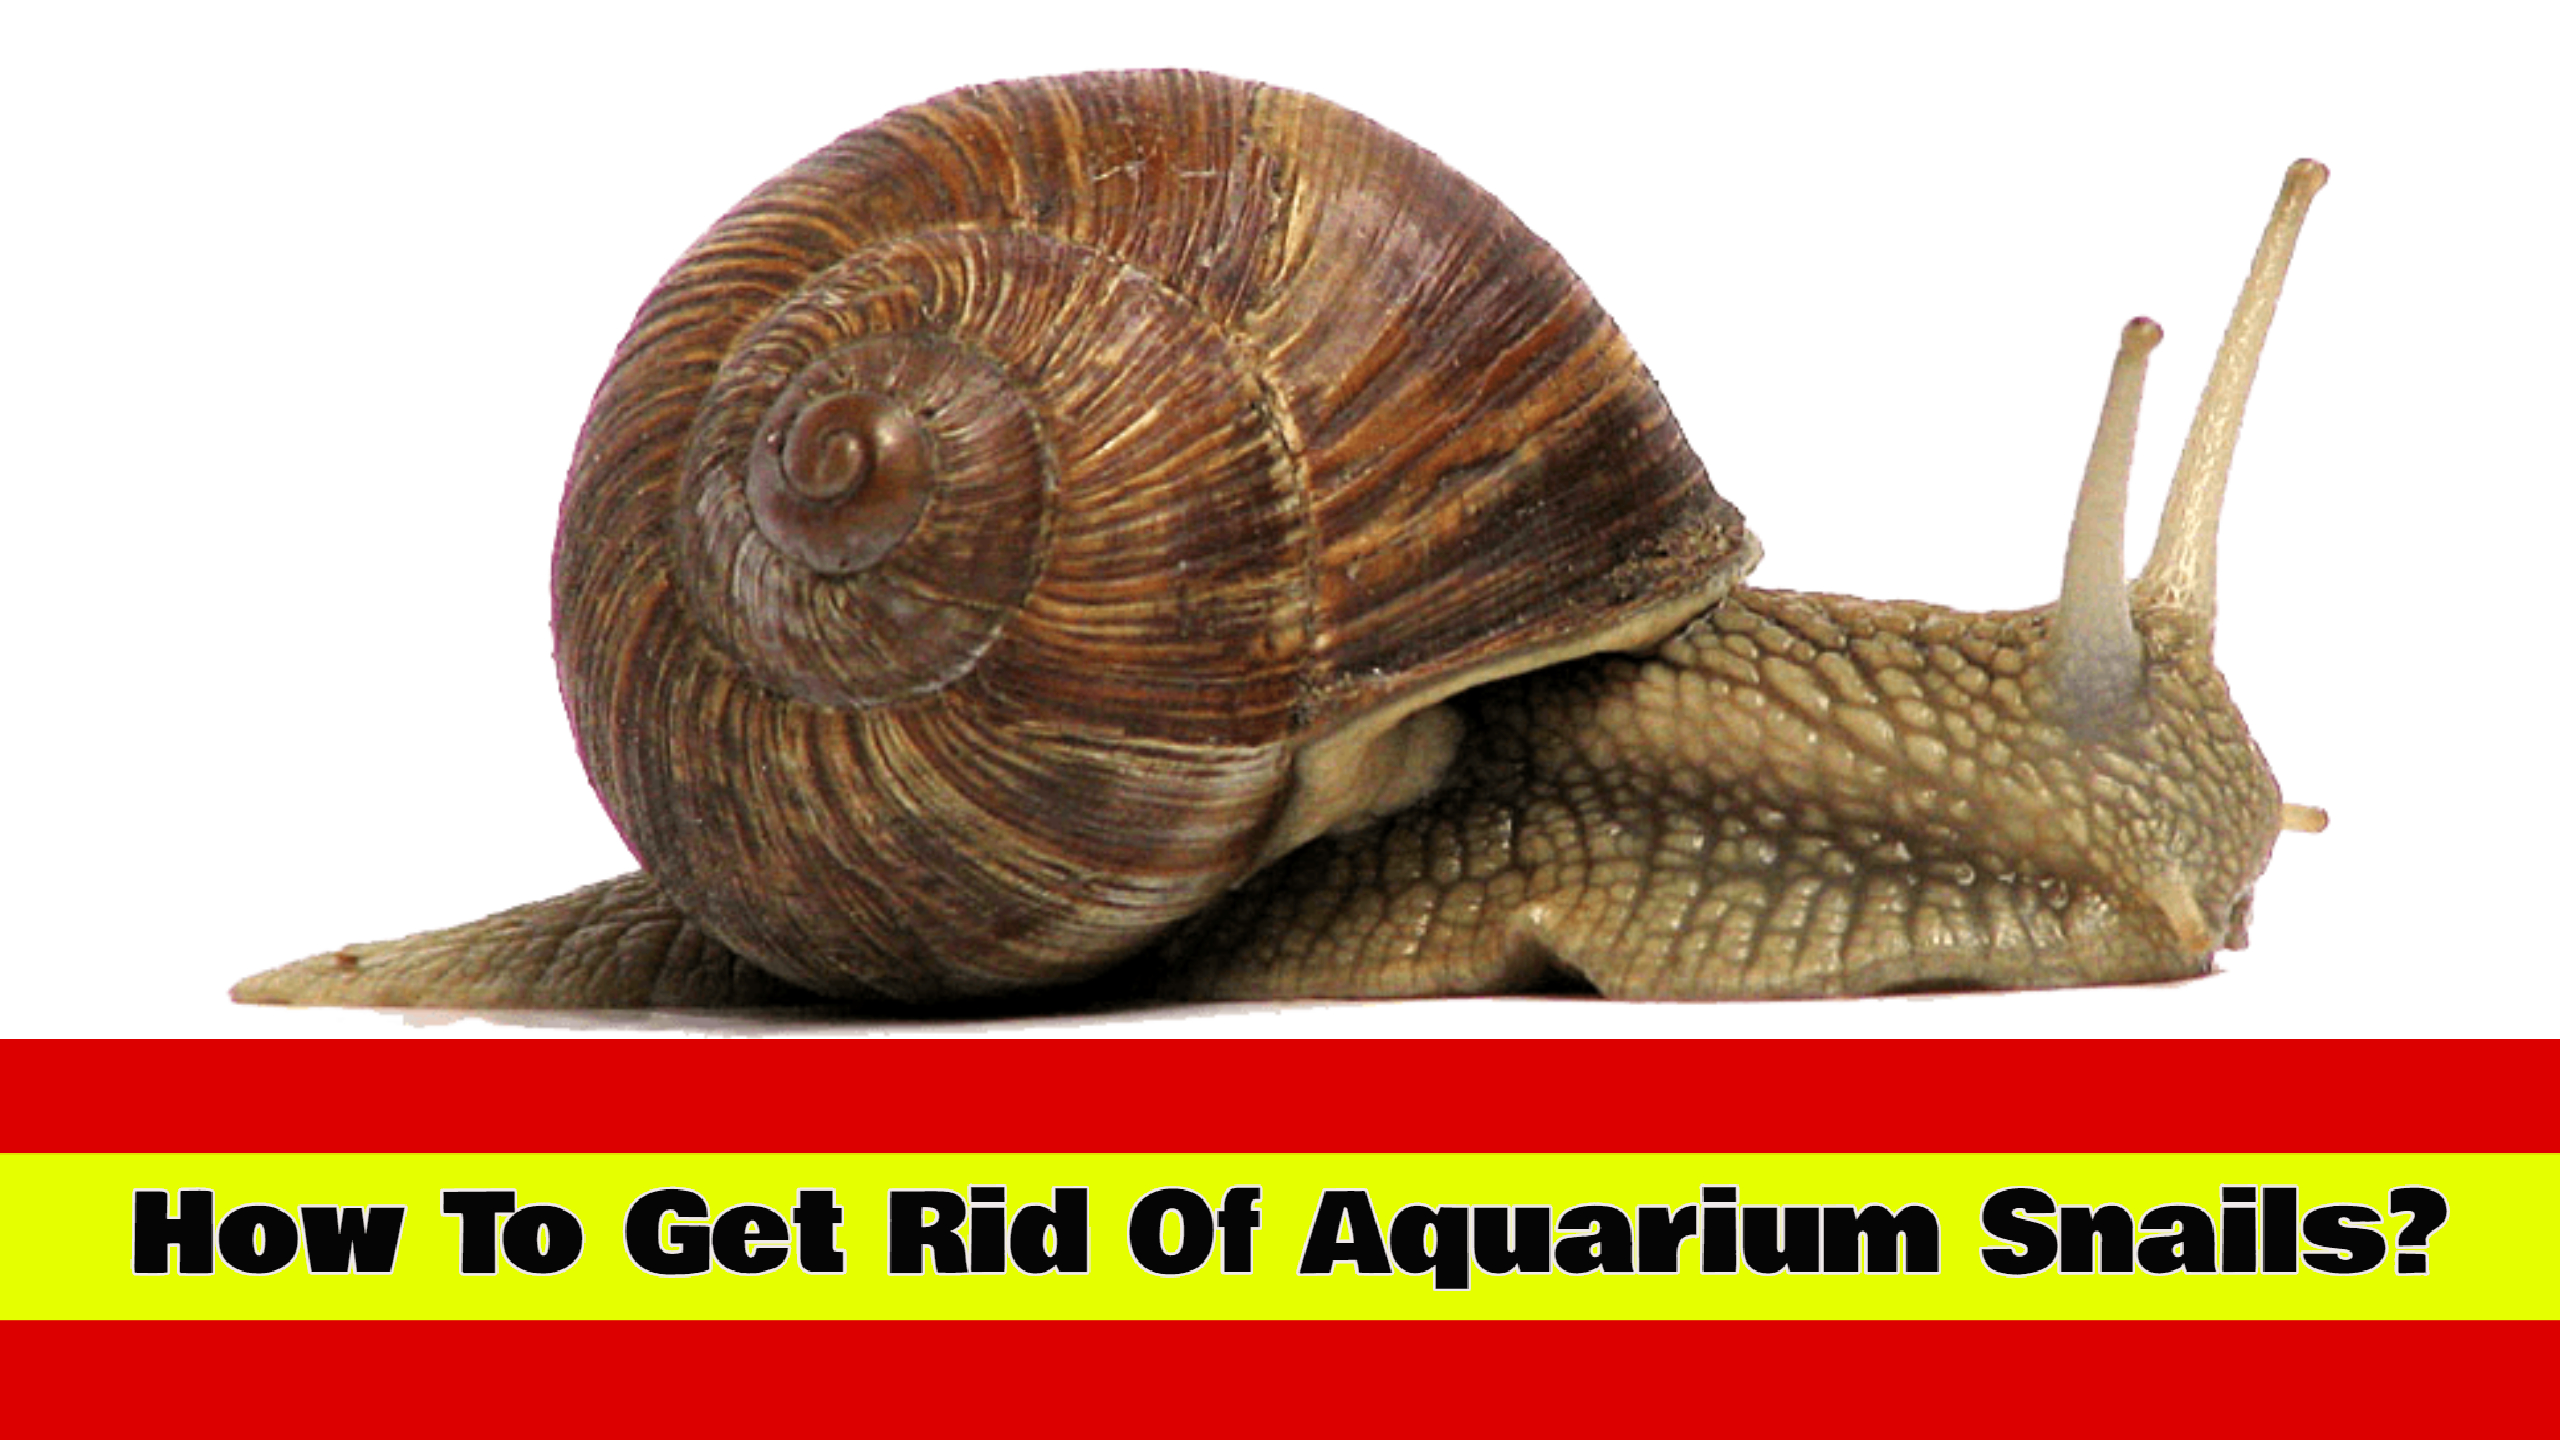 How To Get Rid Of Aquarium Snails Effectively?